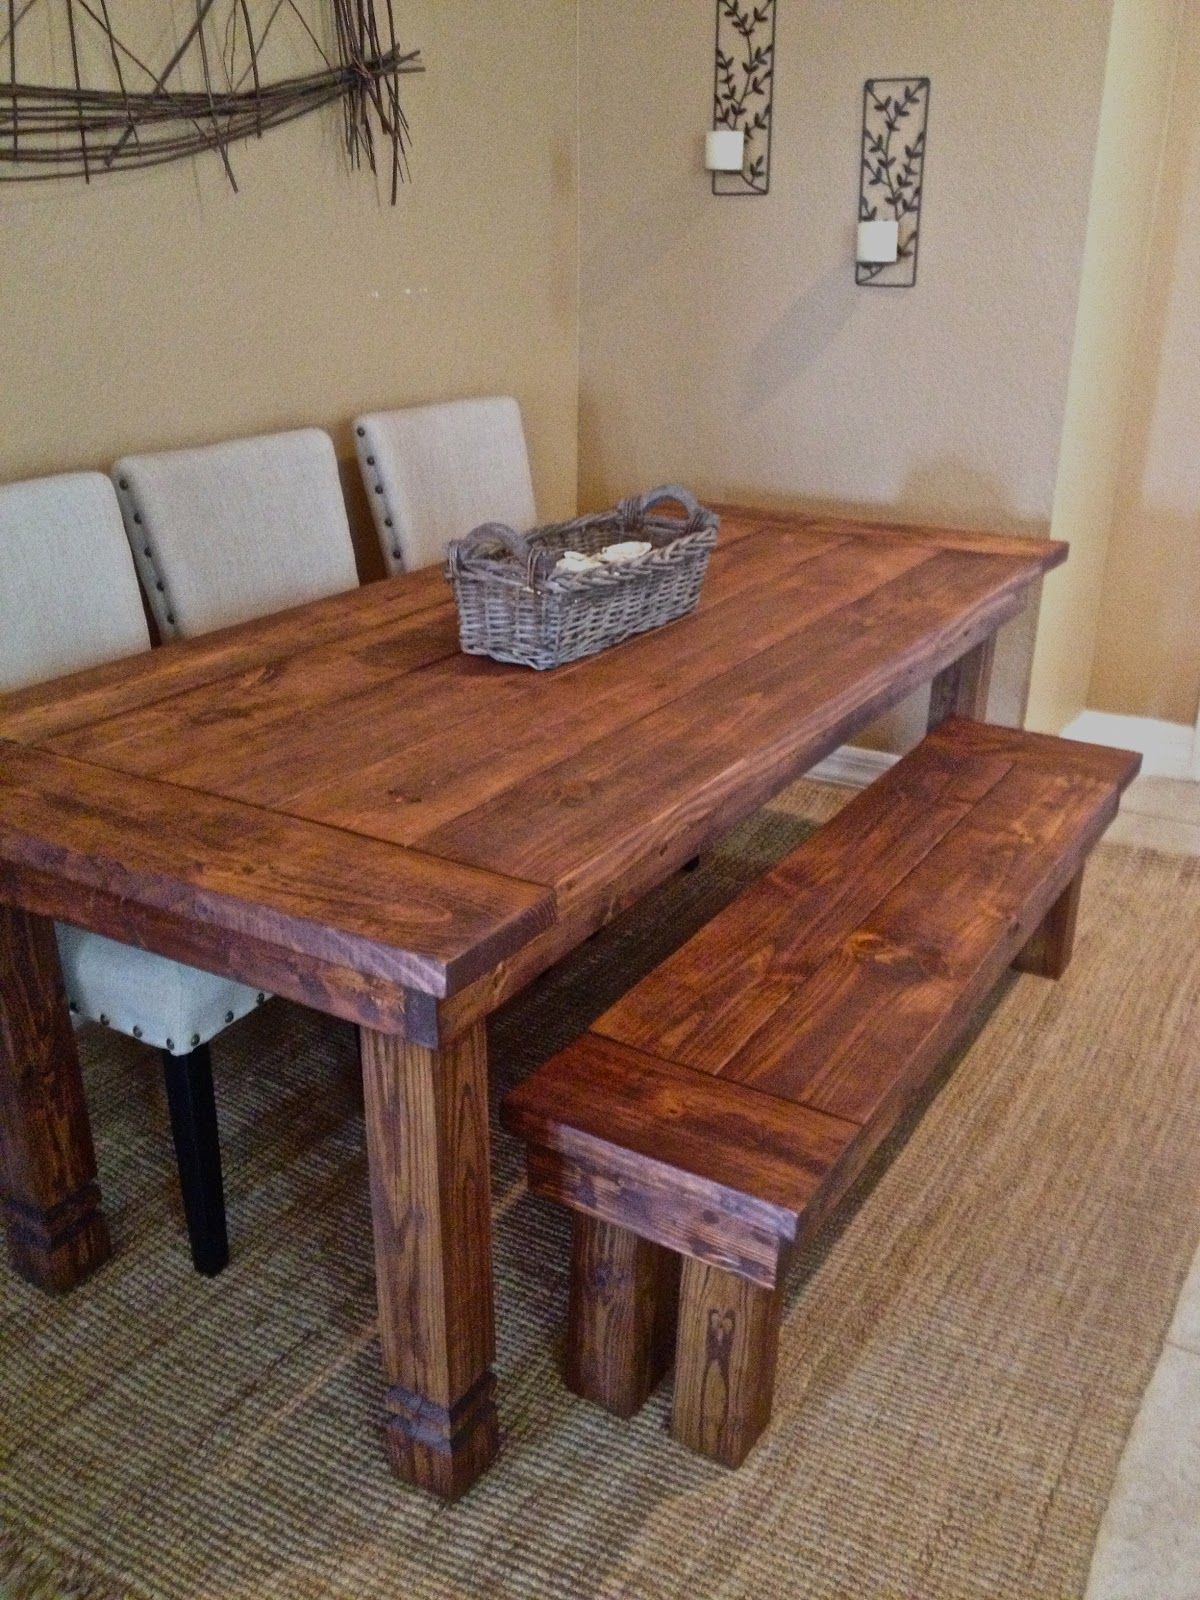 Farmhouse Table And Bench Could Build Your Dream Orlando Fl